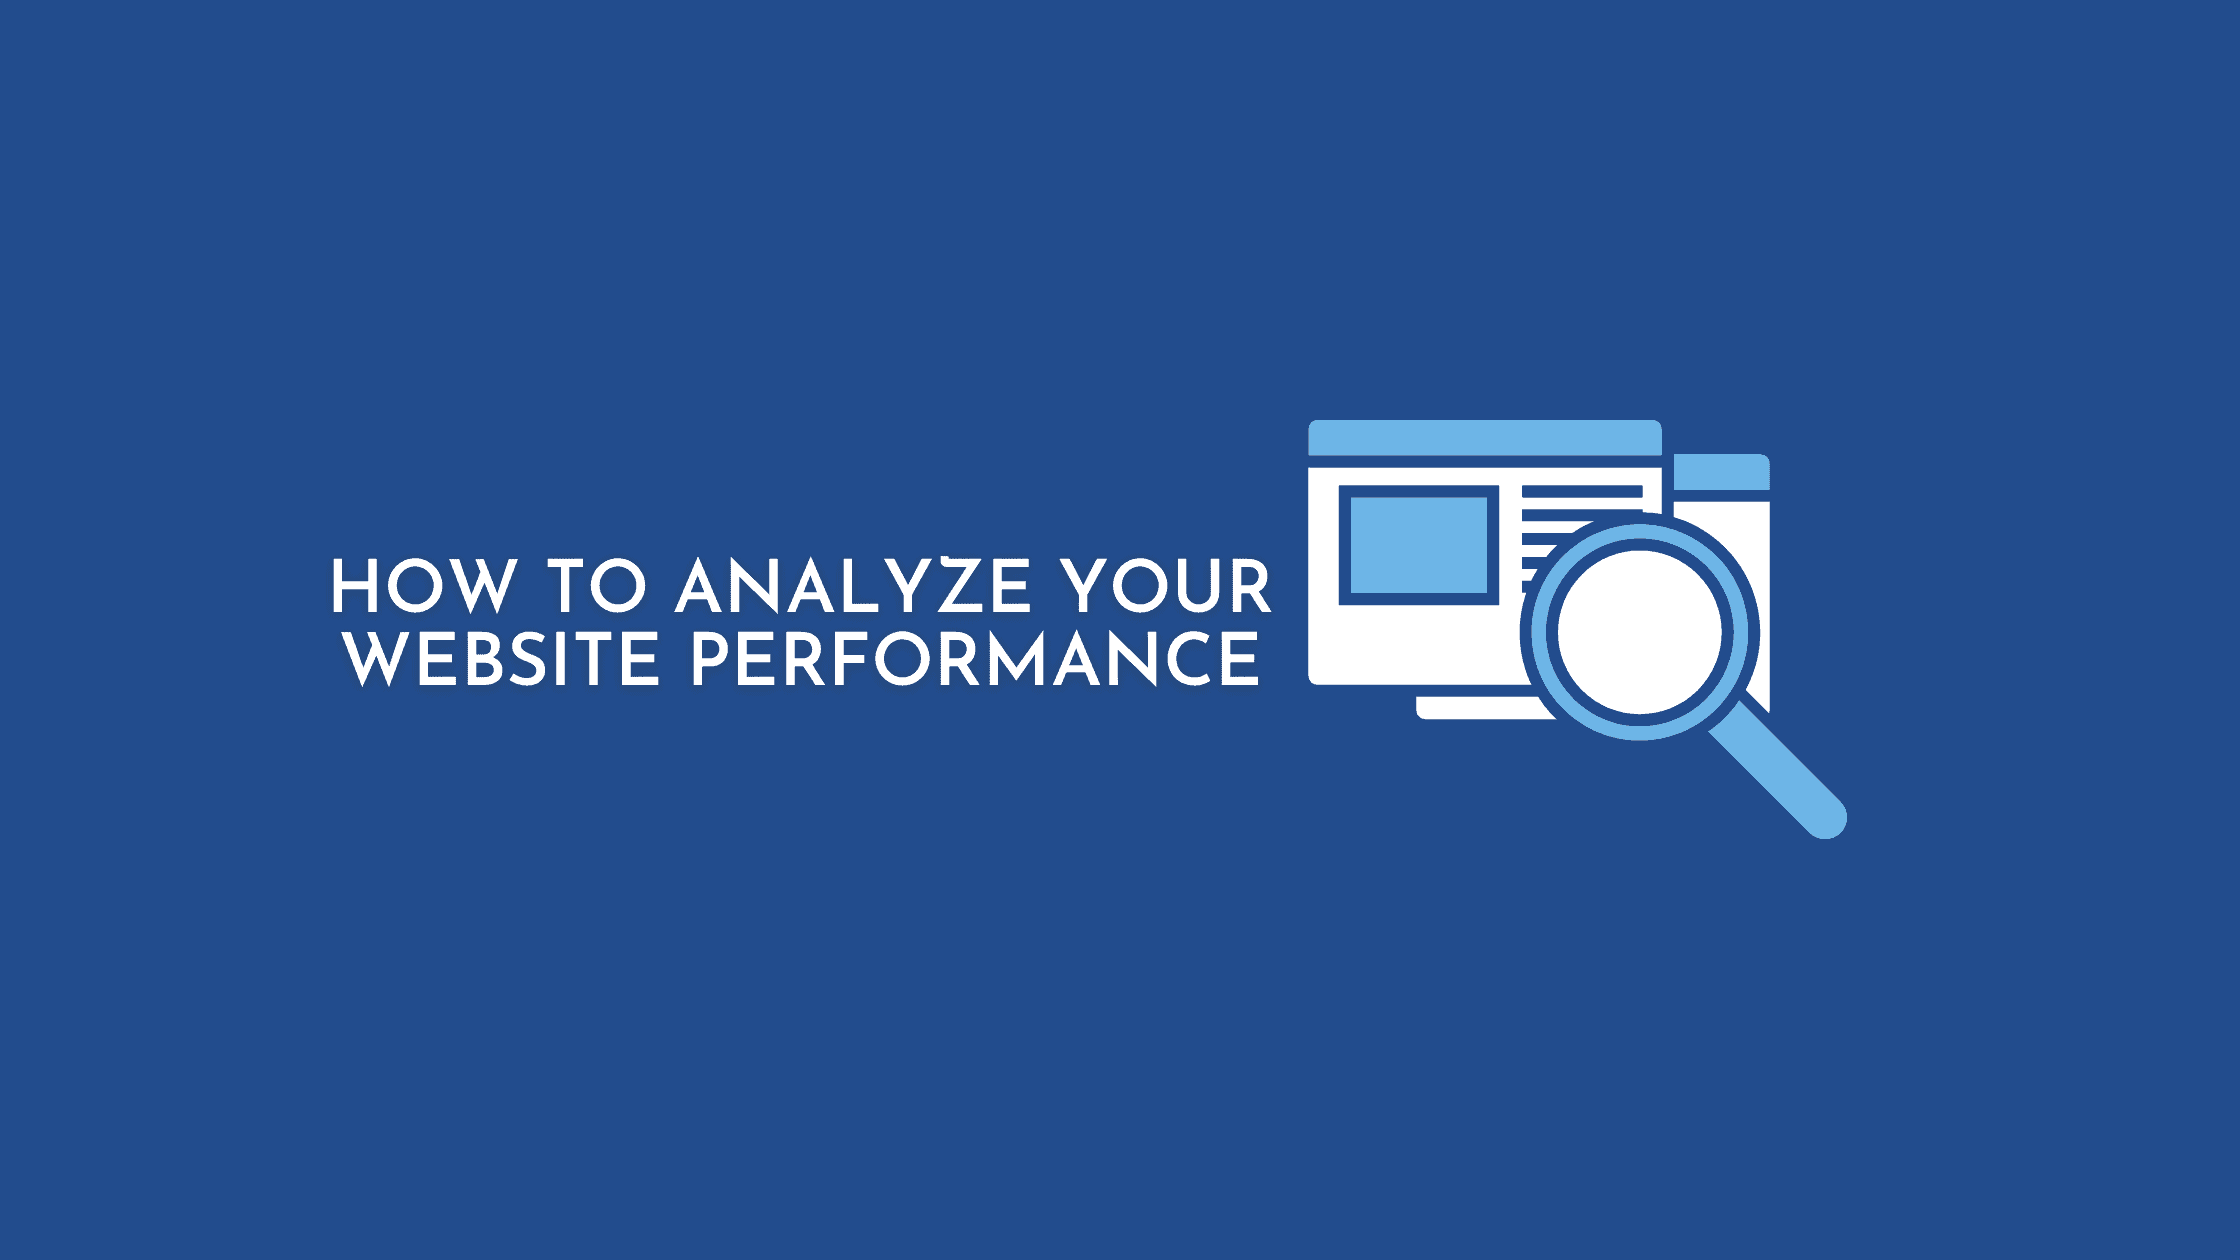 How To Analyze Your Website Performance